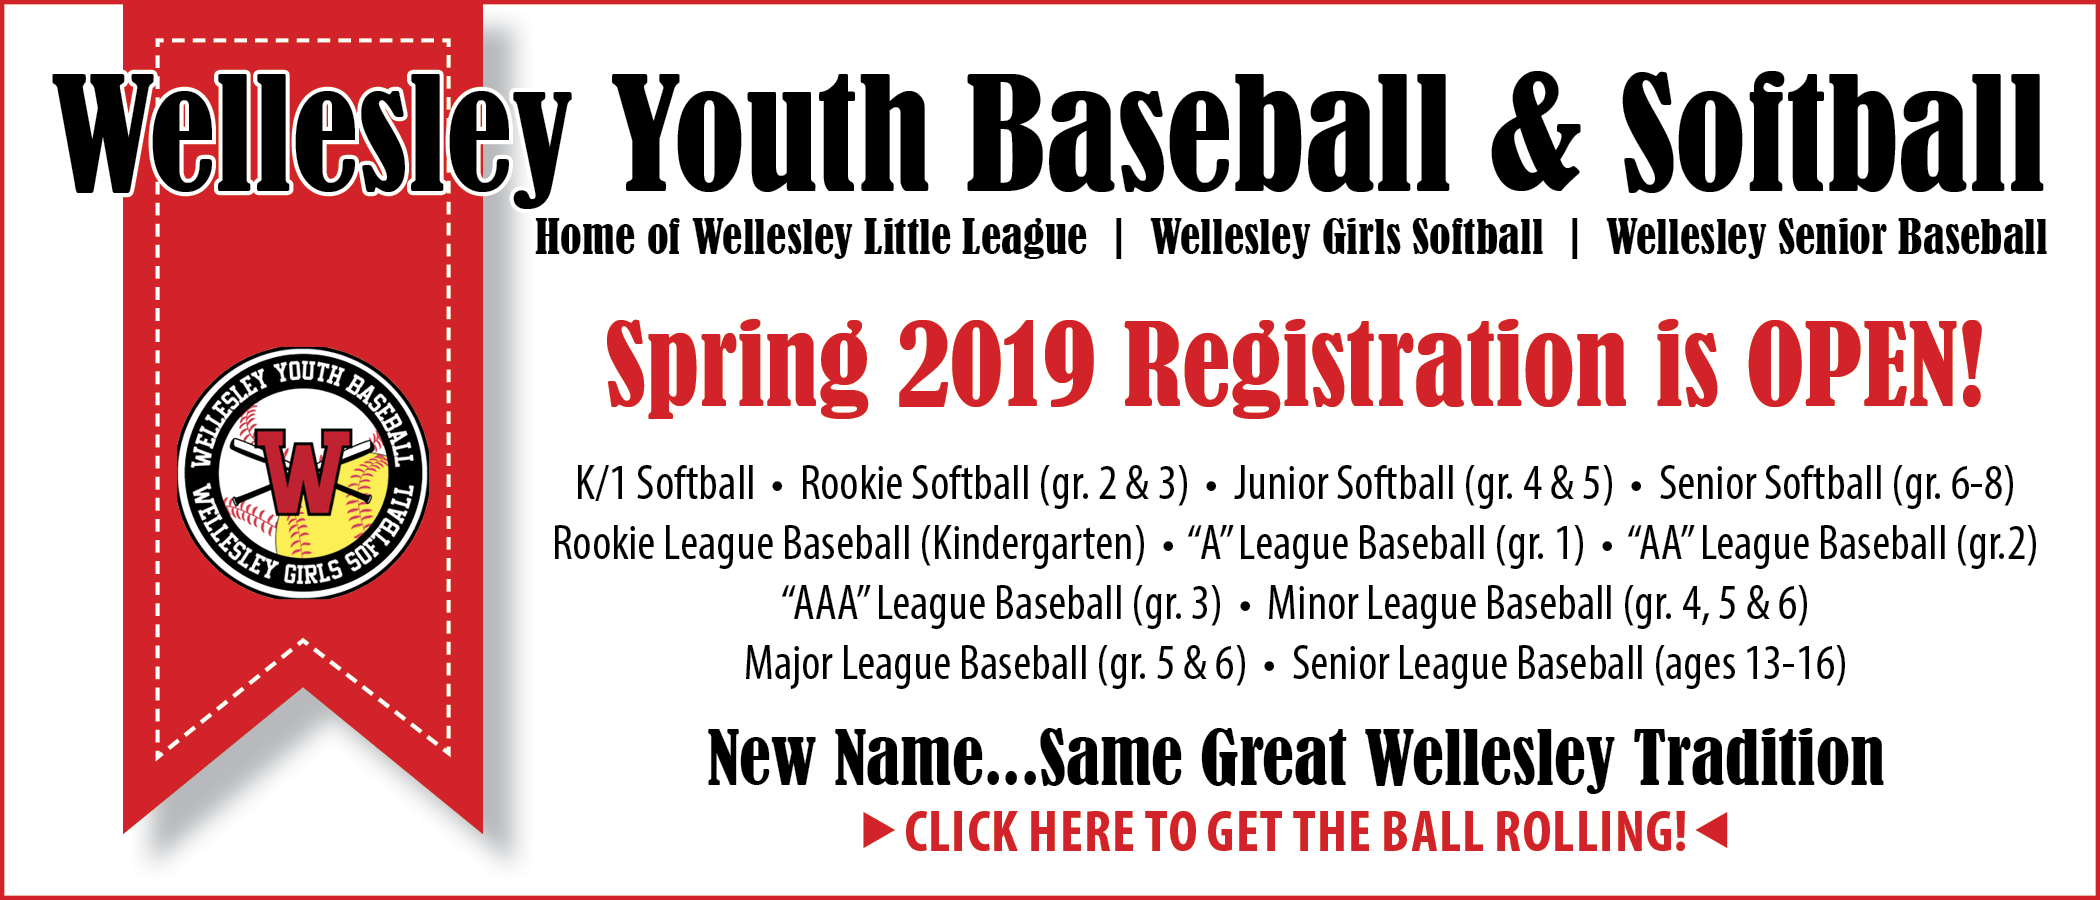 Wellesley youth baseball, softball